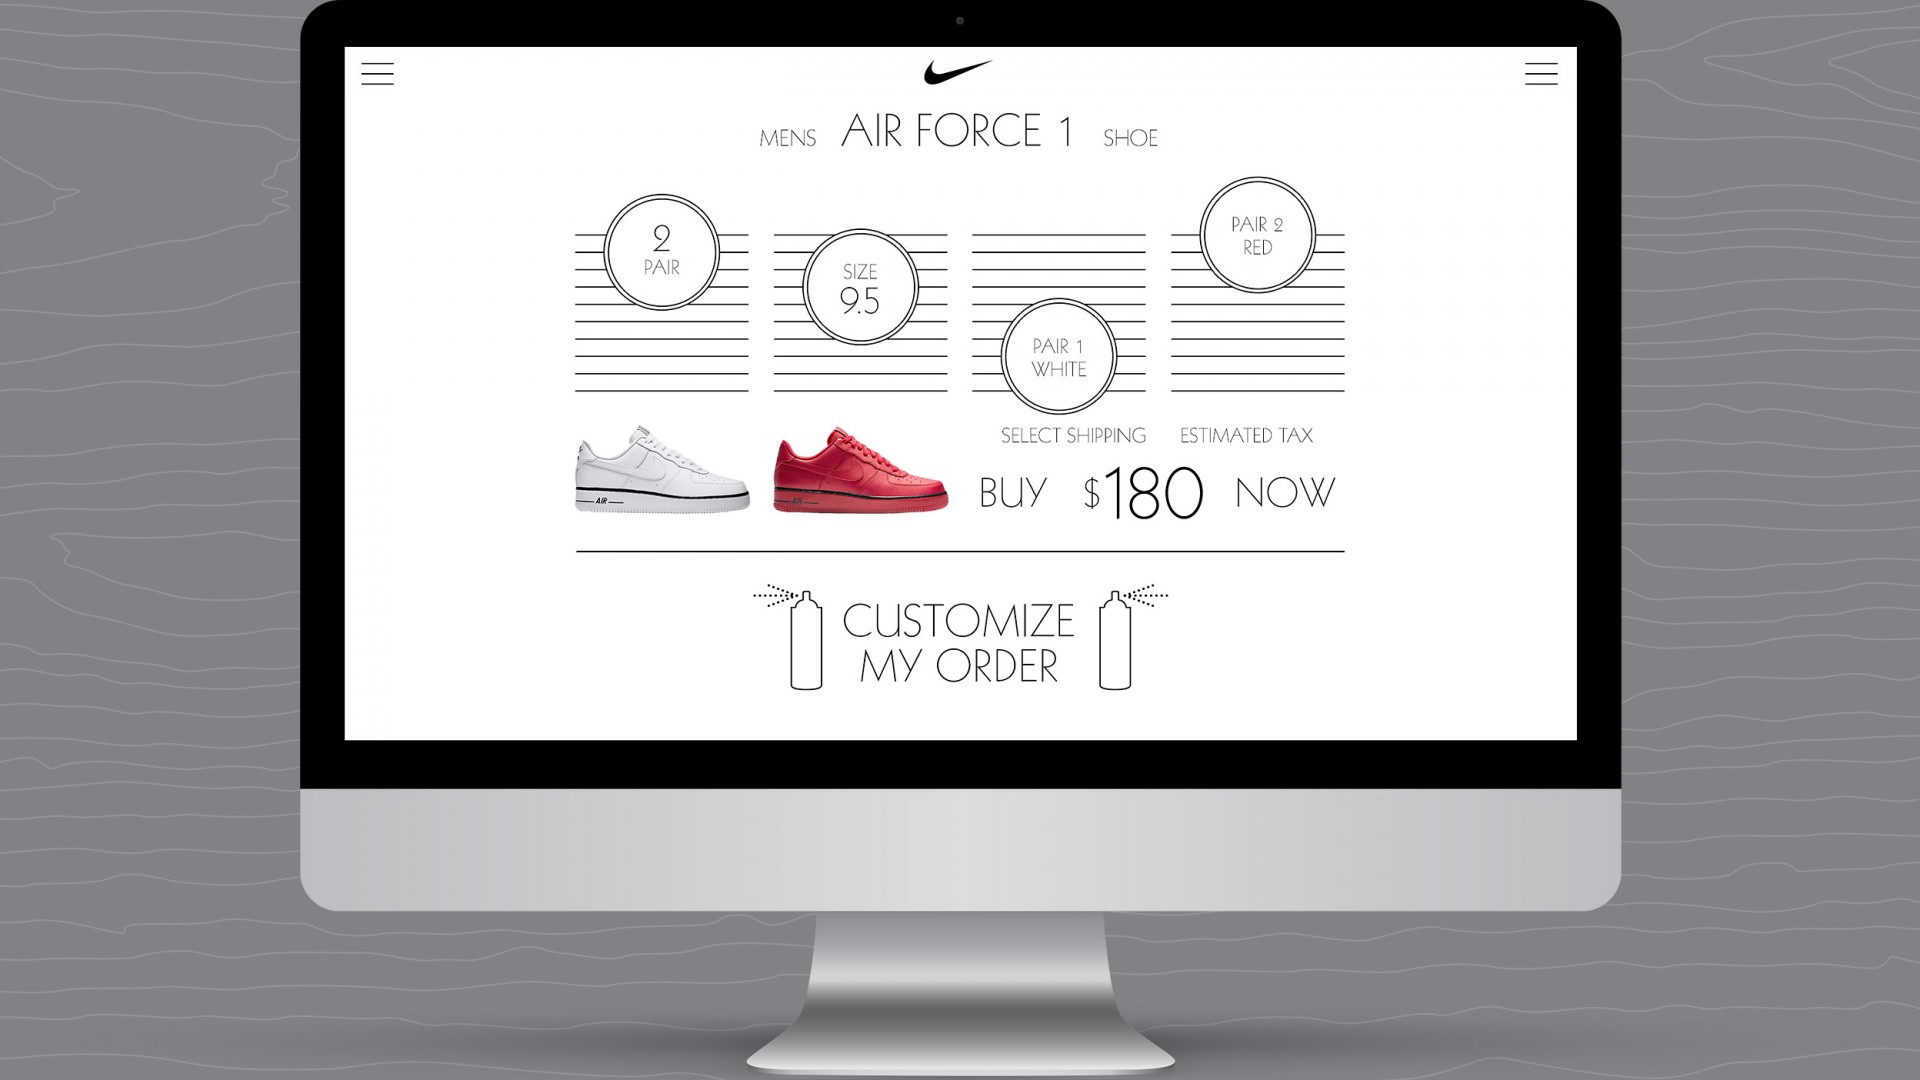 Match Your Mood, Nike UX/UI, desktop view white shoe shopping selections view.